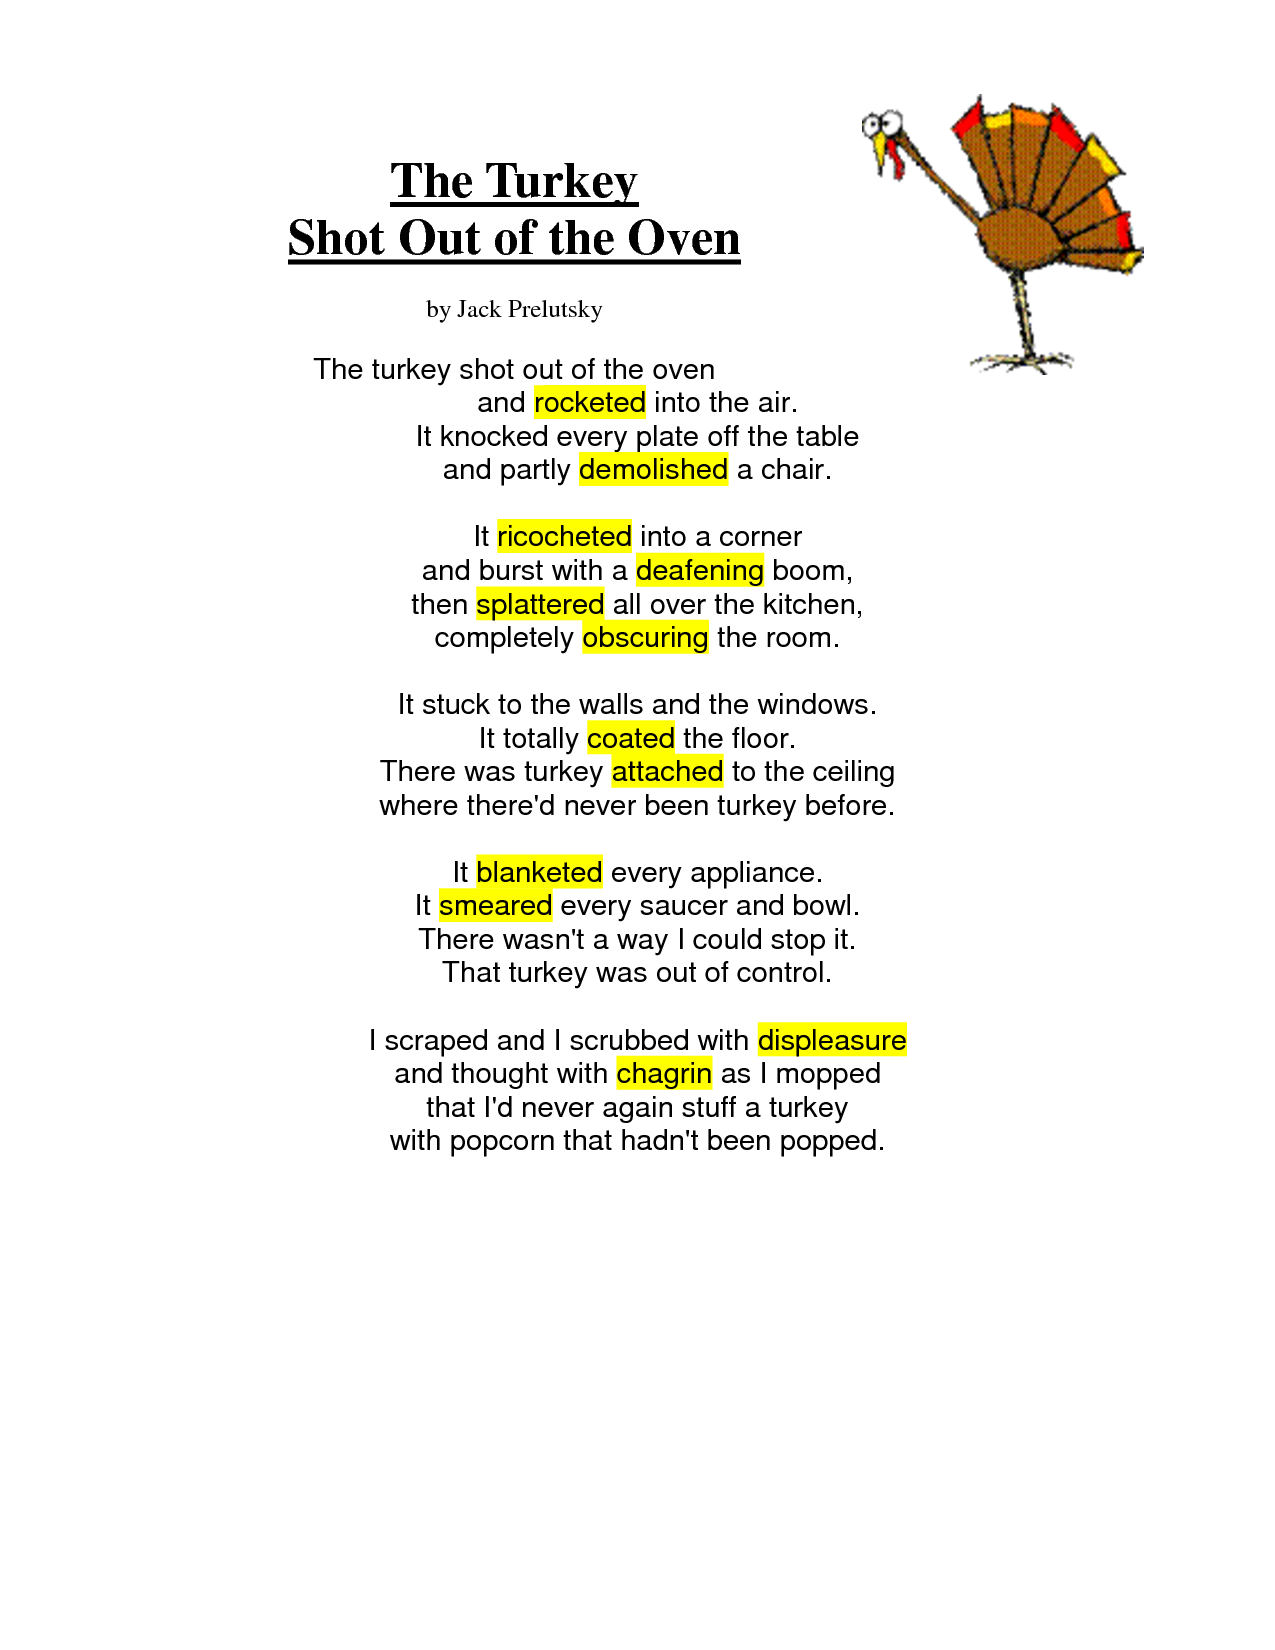 The Turkey Shot Out Of The Oven By Jack Prelutsky